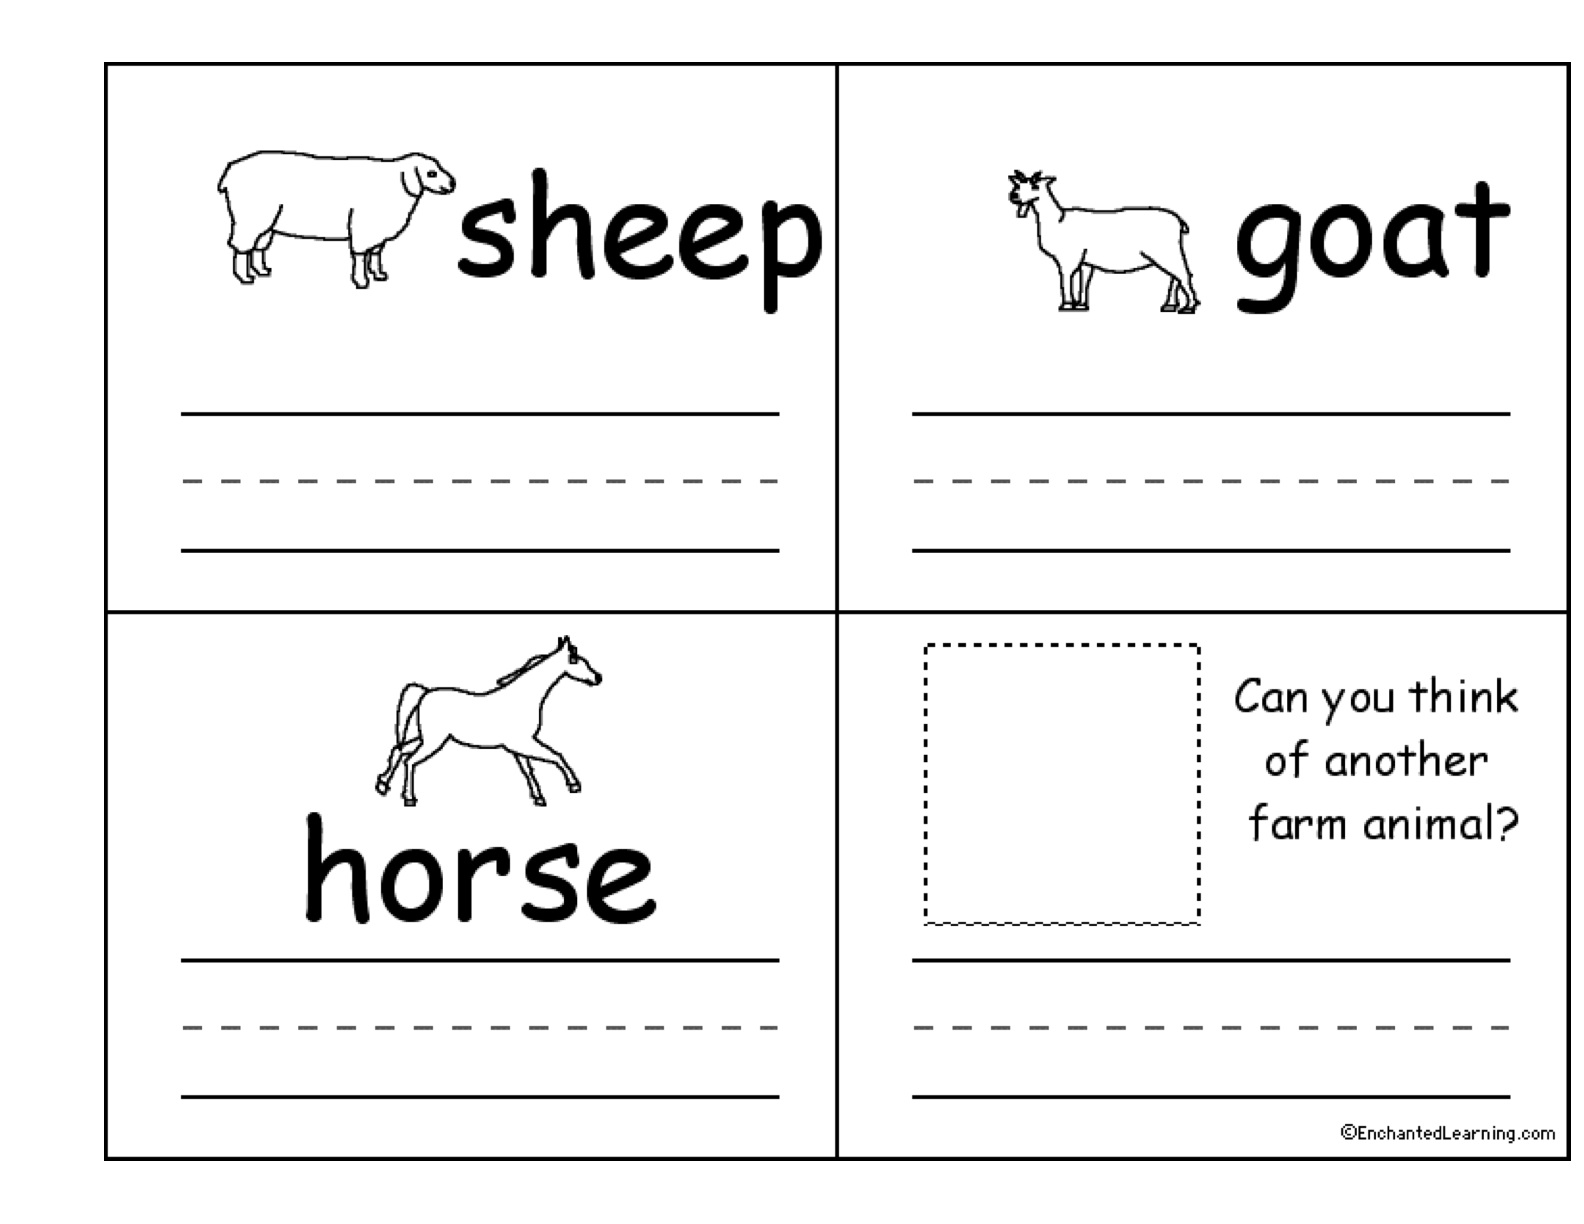 94 Free Download Forest Animals Worksheets For Kindergarten Animals Forest For Kindergarten